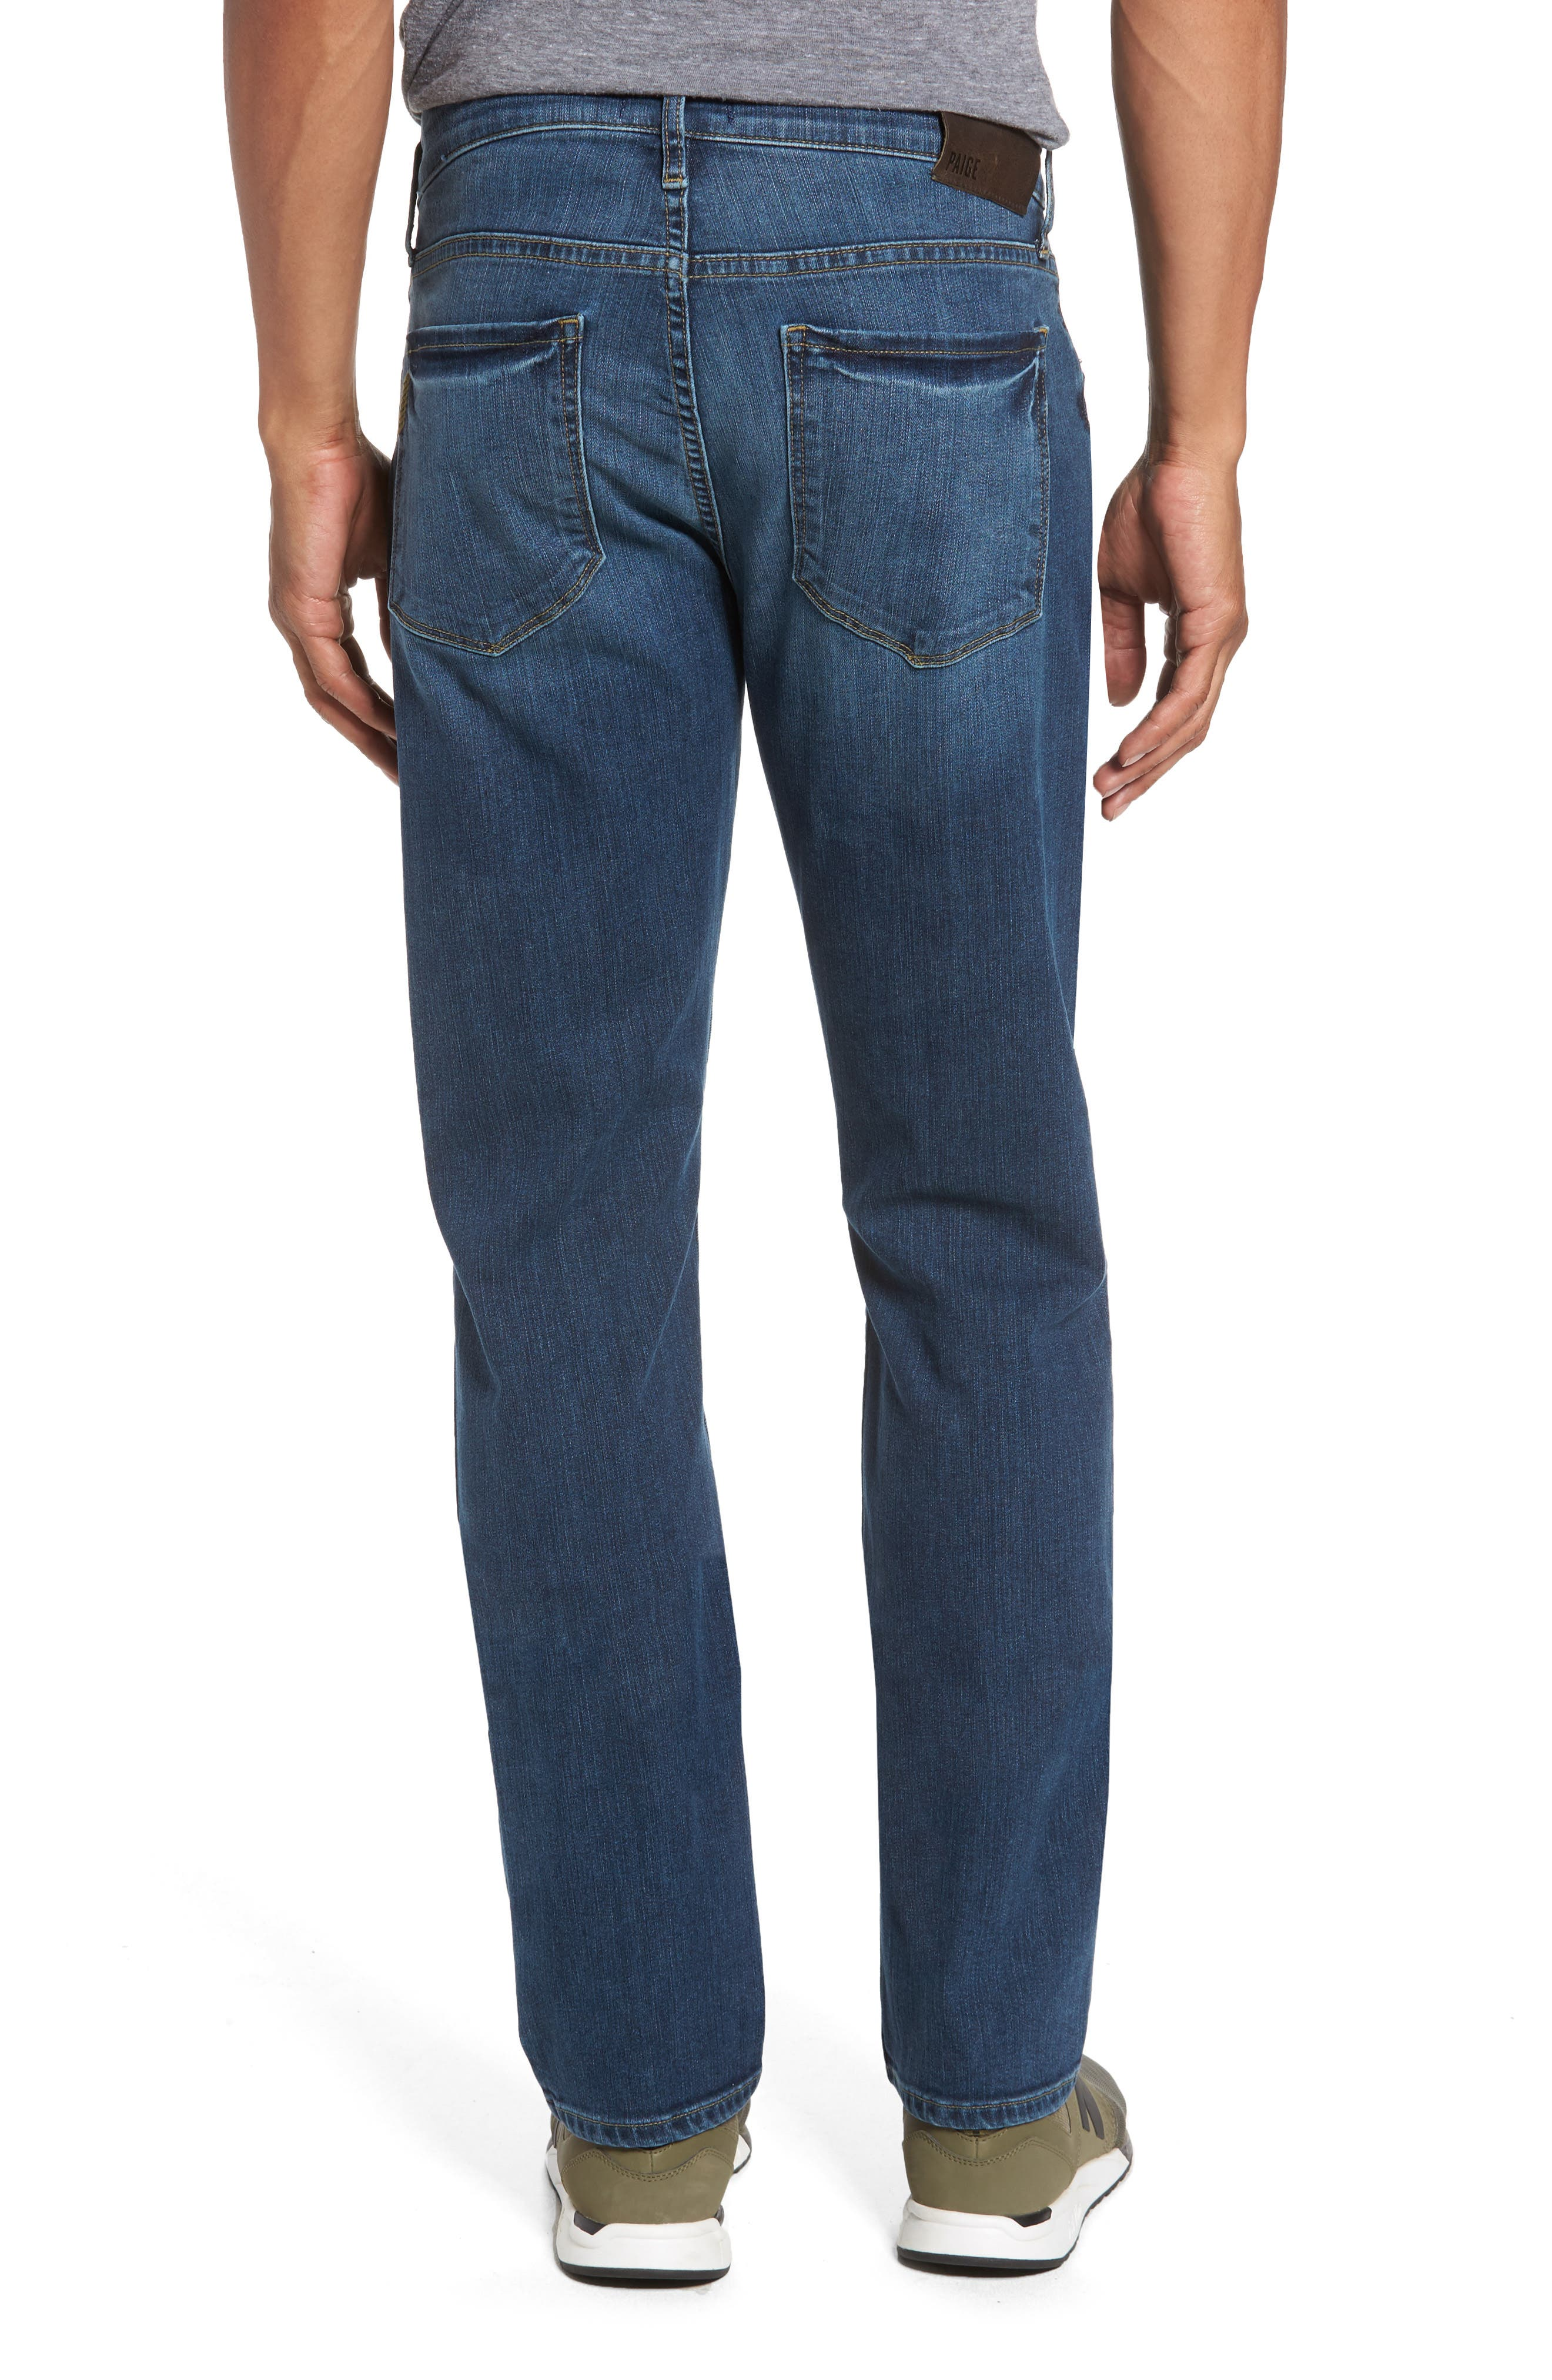 Legacy - Federal Slim Straight Fit Jeans,                             Alternate thumbnail 2, color,                             400